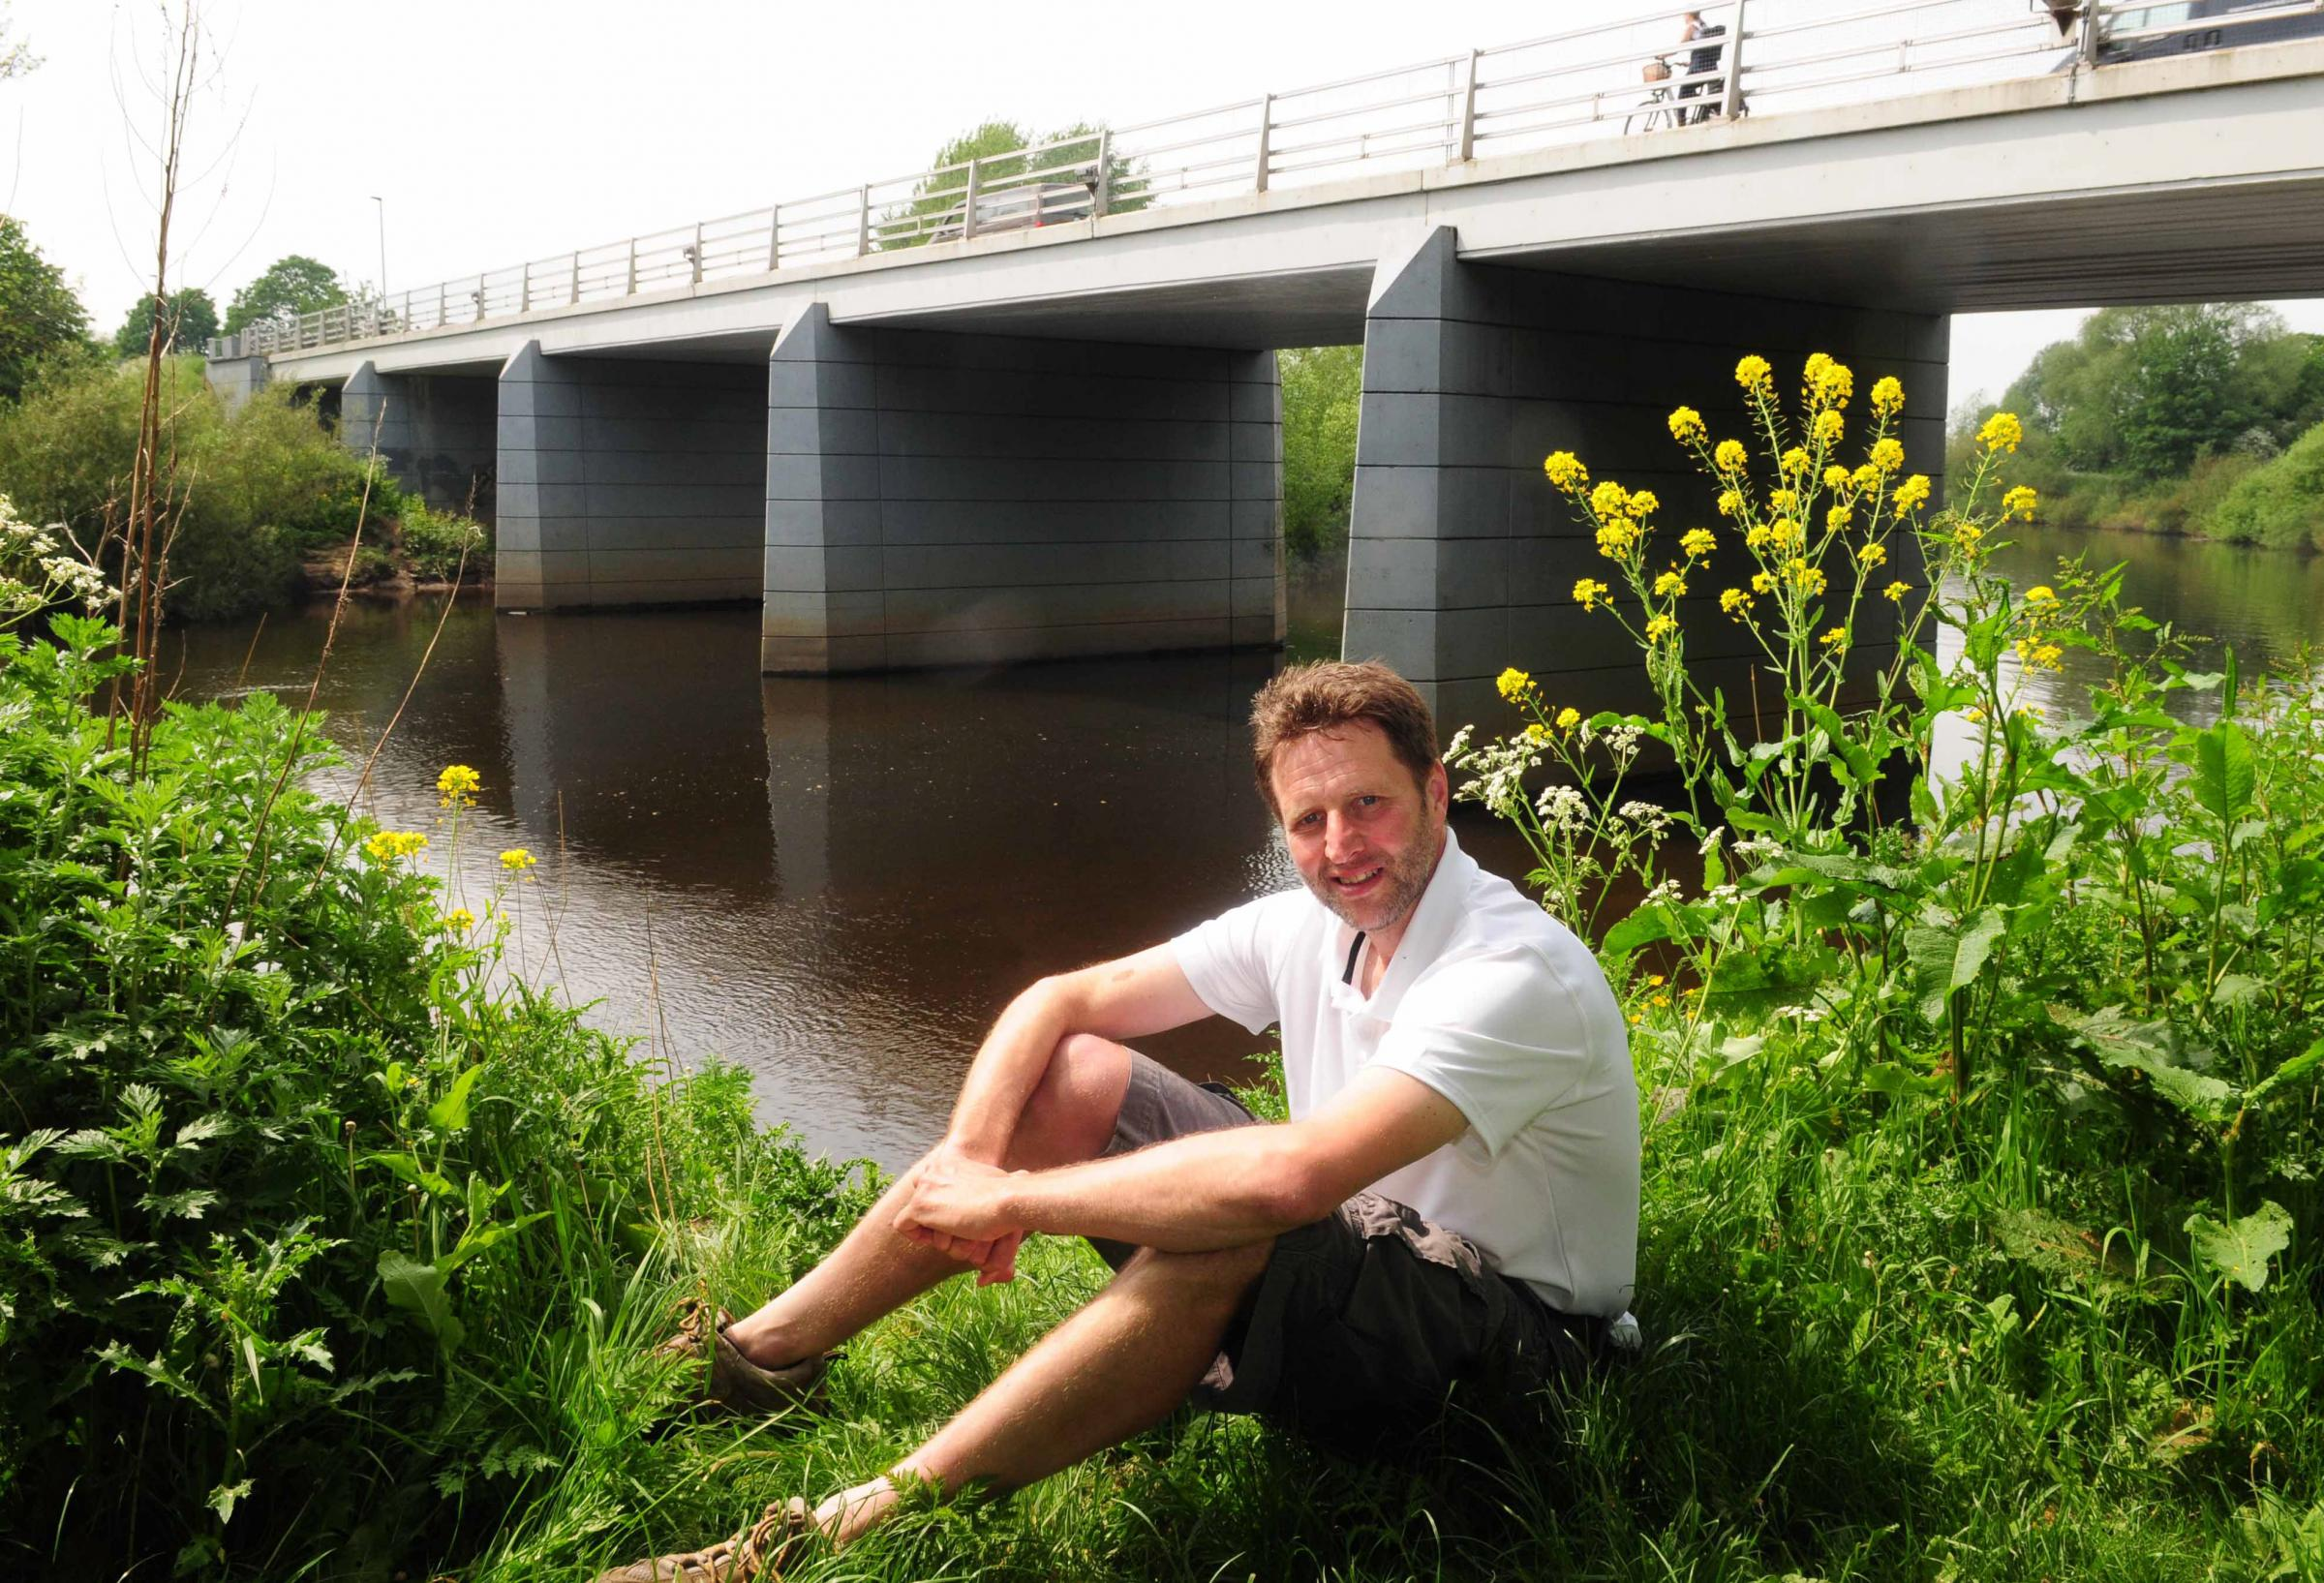 Craig Marsden by the river Ouse at Clifton Ings Bridge.